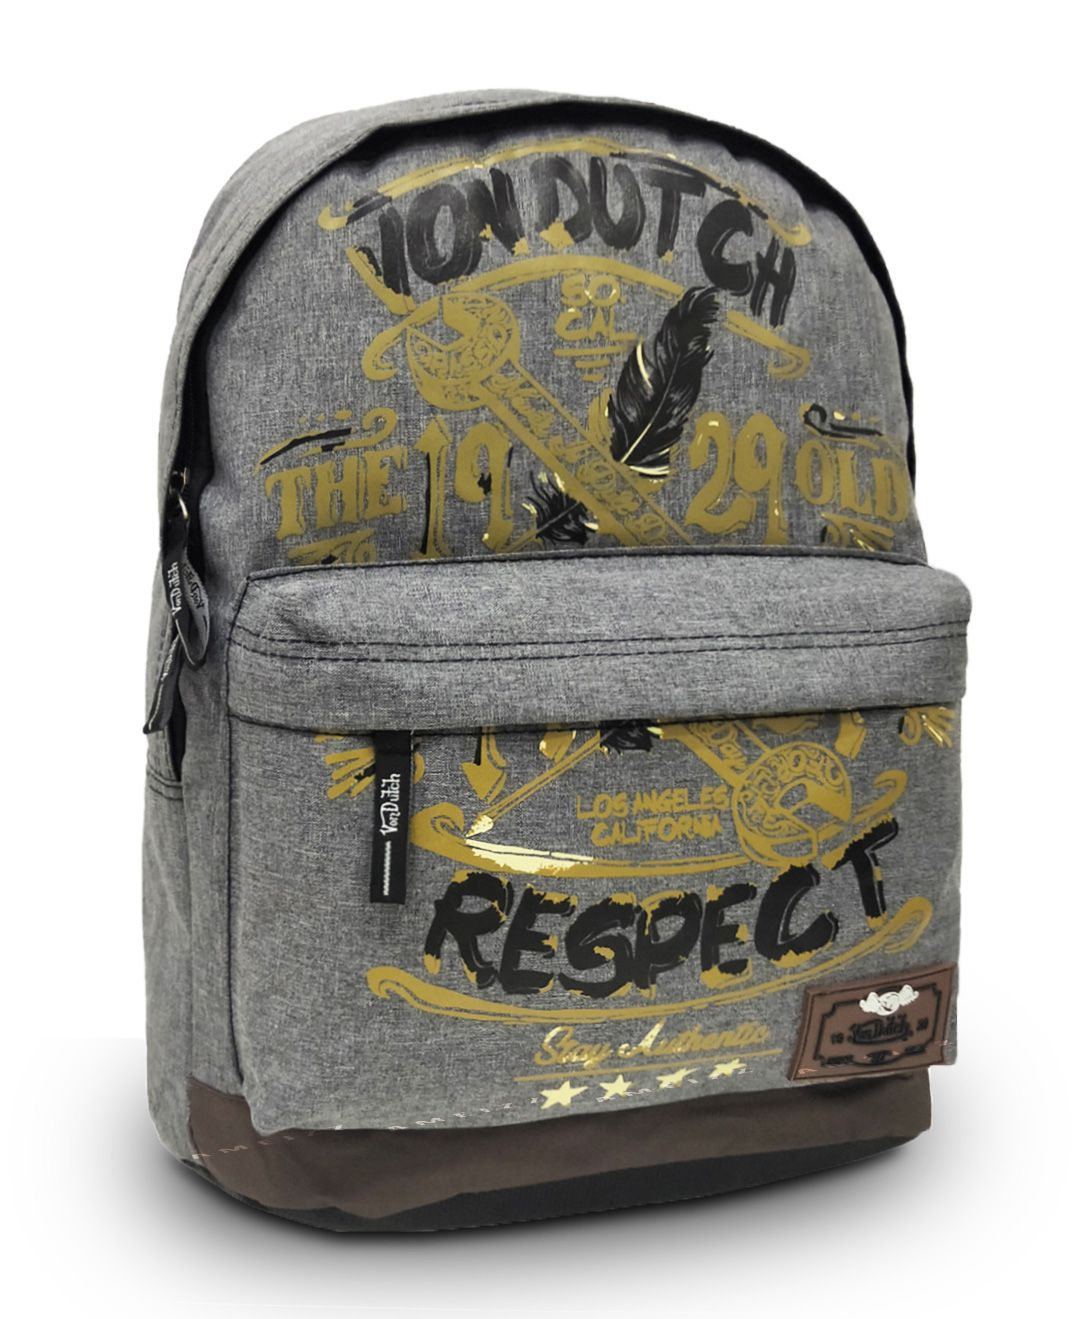 Mochila Juvenil Escolar Backpack Von Dutch 182609 Original